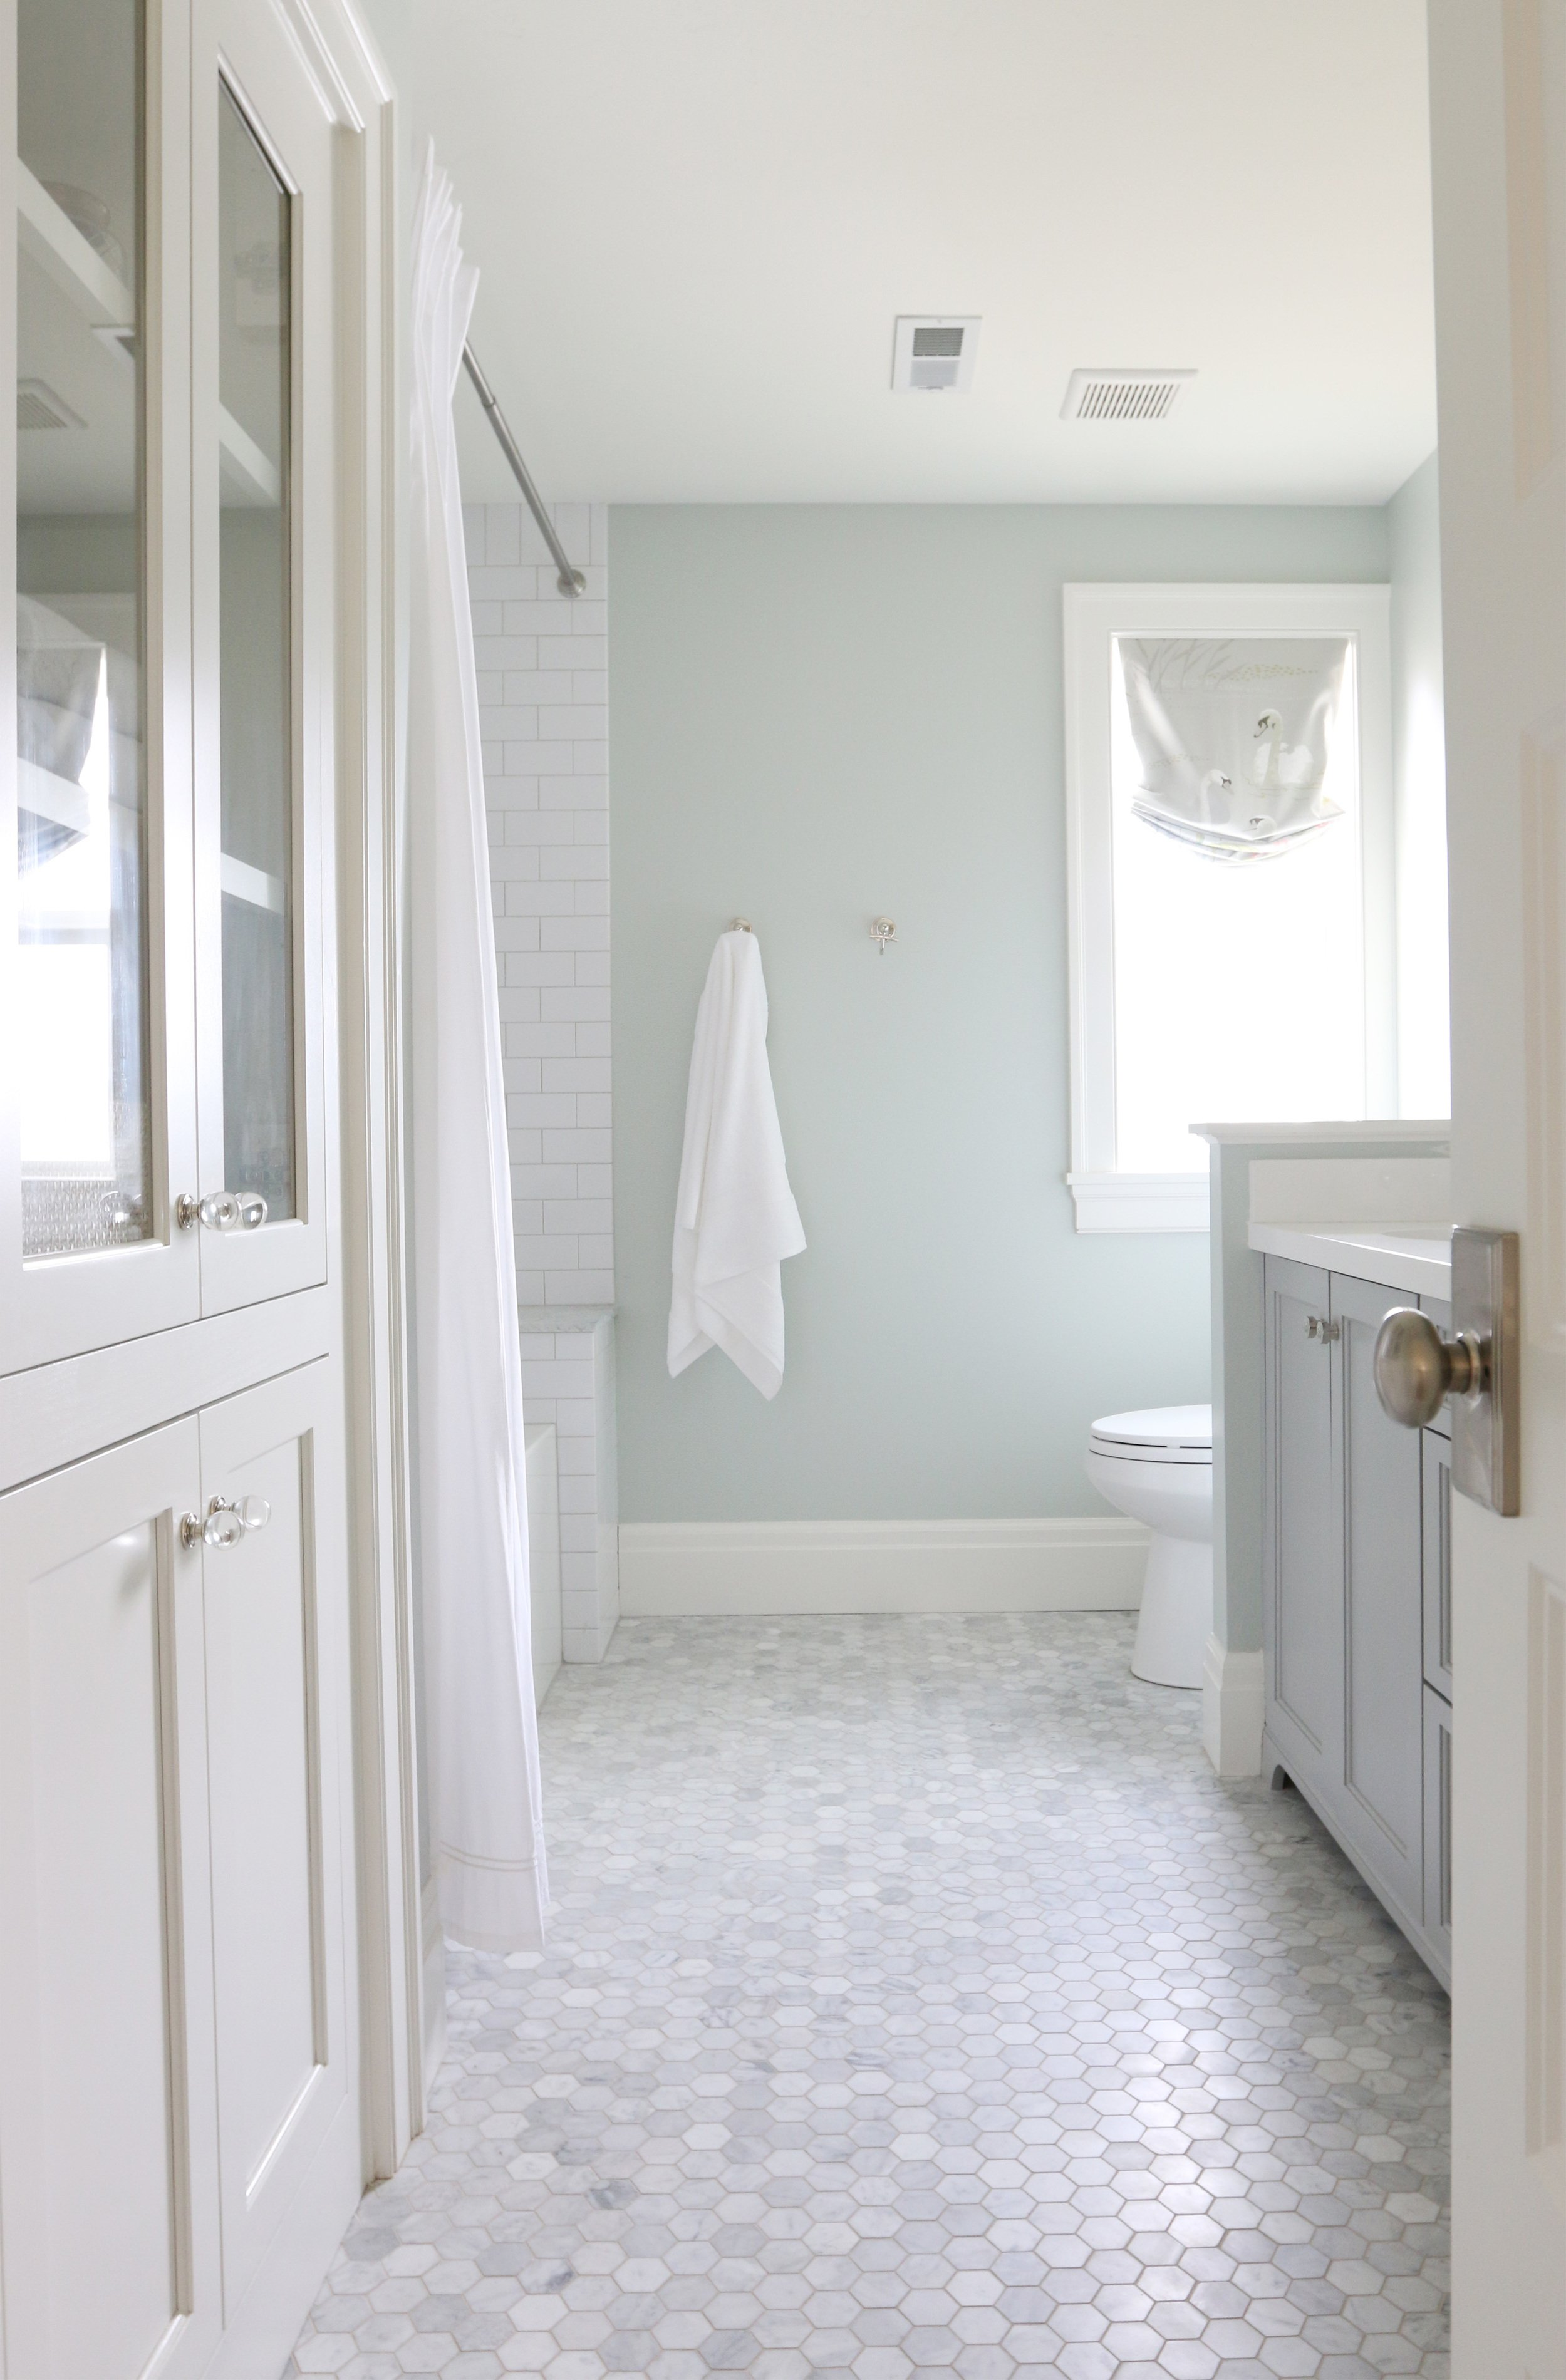 2016 bestselling sherwin williams paint colors What color to paint bathroom with gray tile